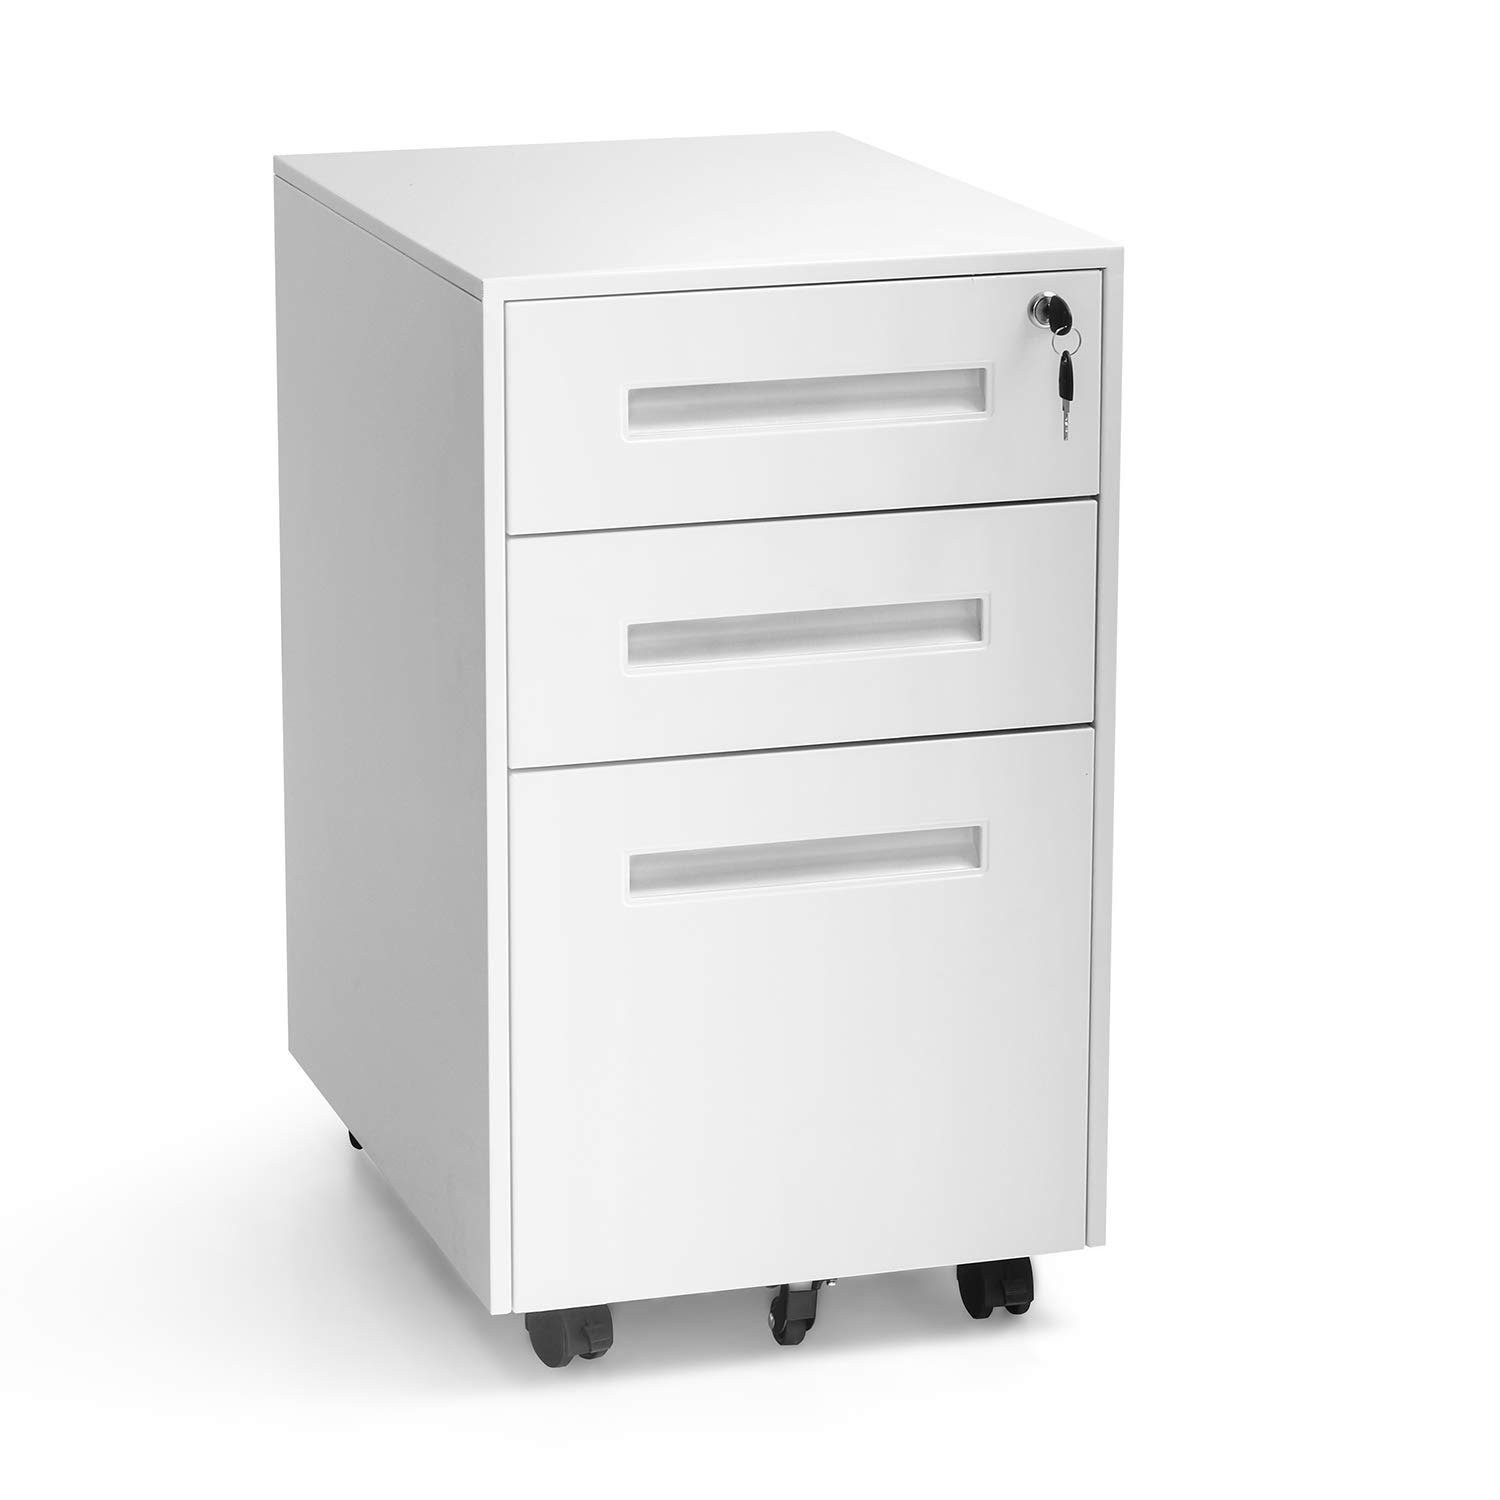 INTERGREAT Mobility Cabinet for Closet/Office, Rolling Filing Cabinet 3 Drawers Fully Assembled White B